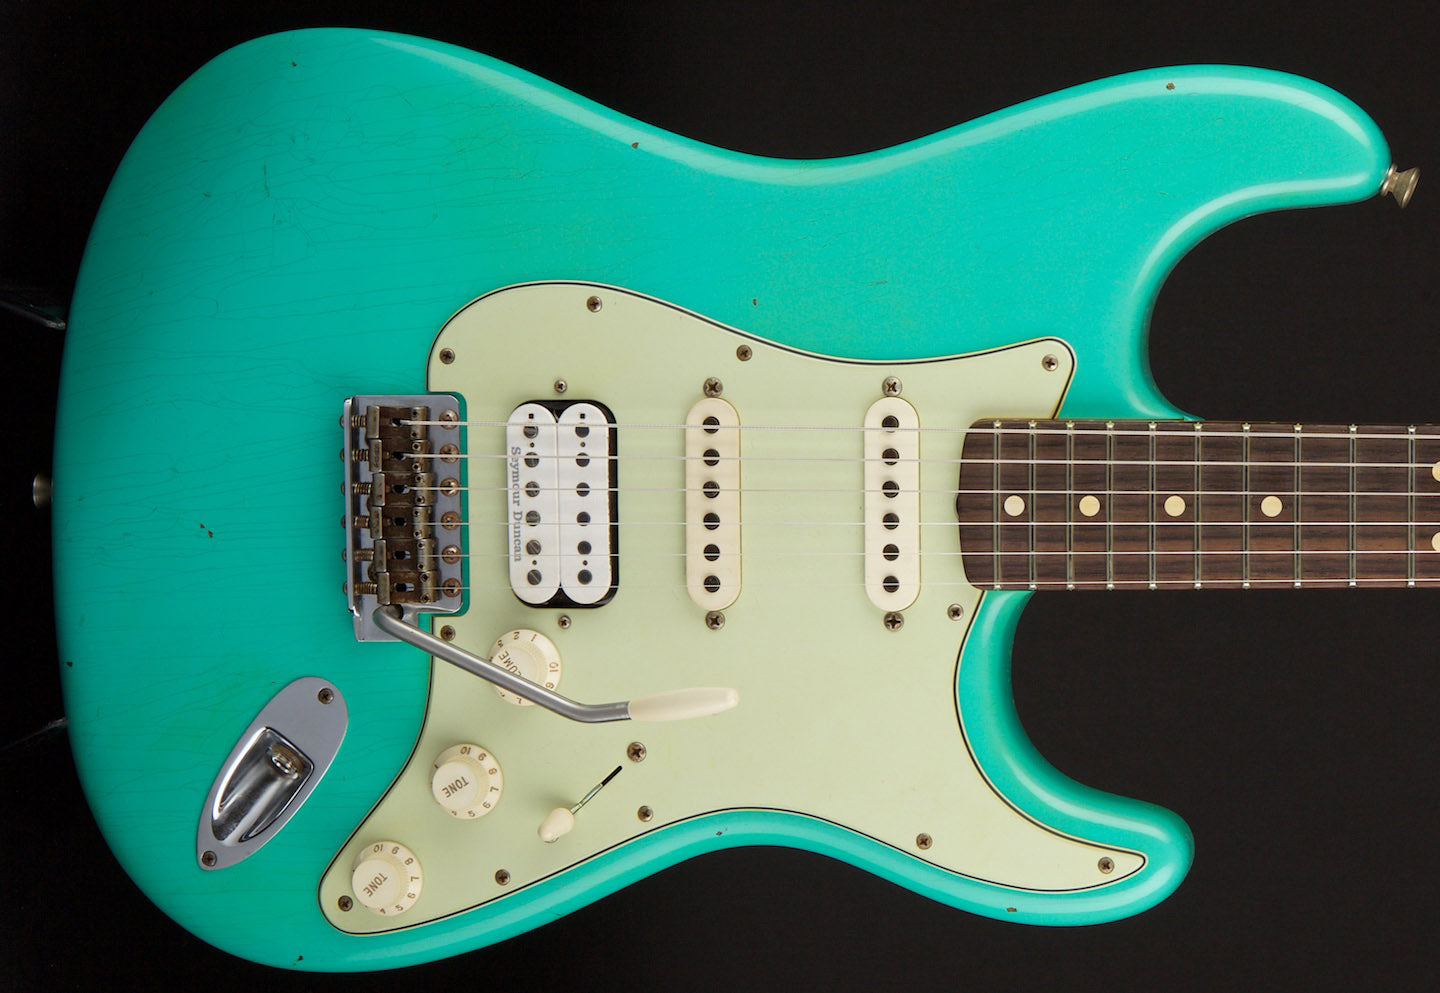 Fender Custom Shop Stratocaster WG/John Cruz Spec 63  Journeyman Relic Sea Foam Green #R82592